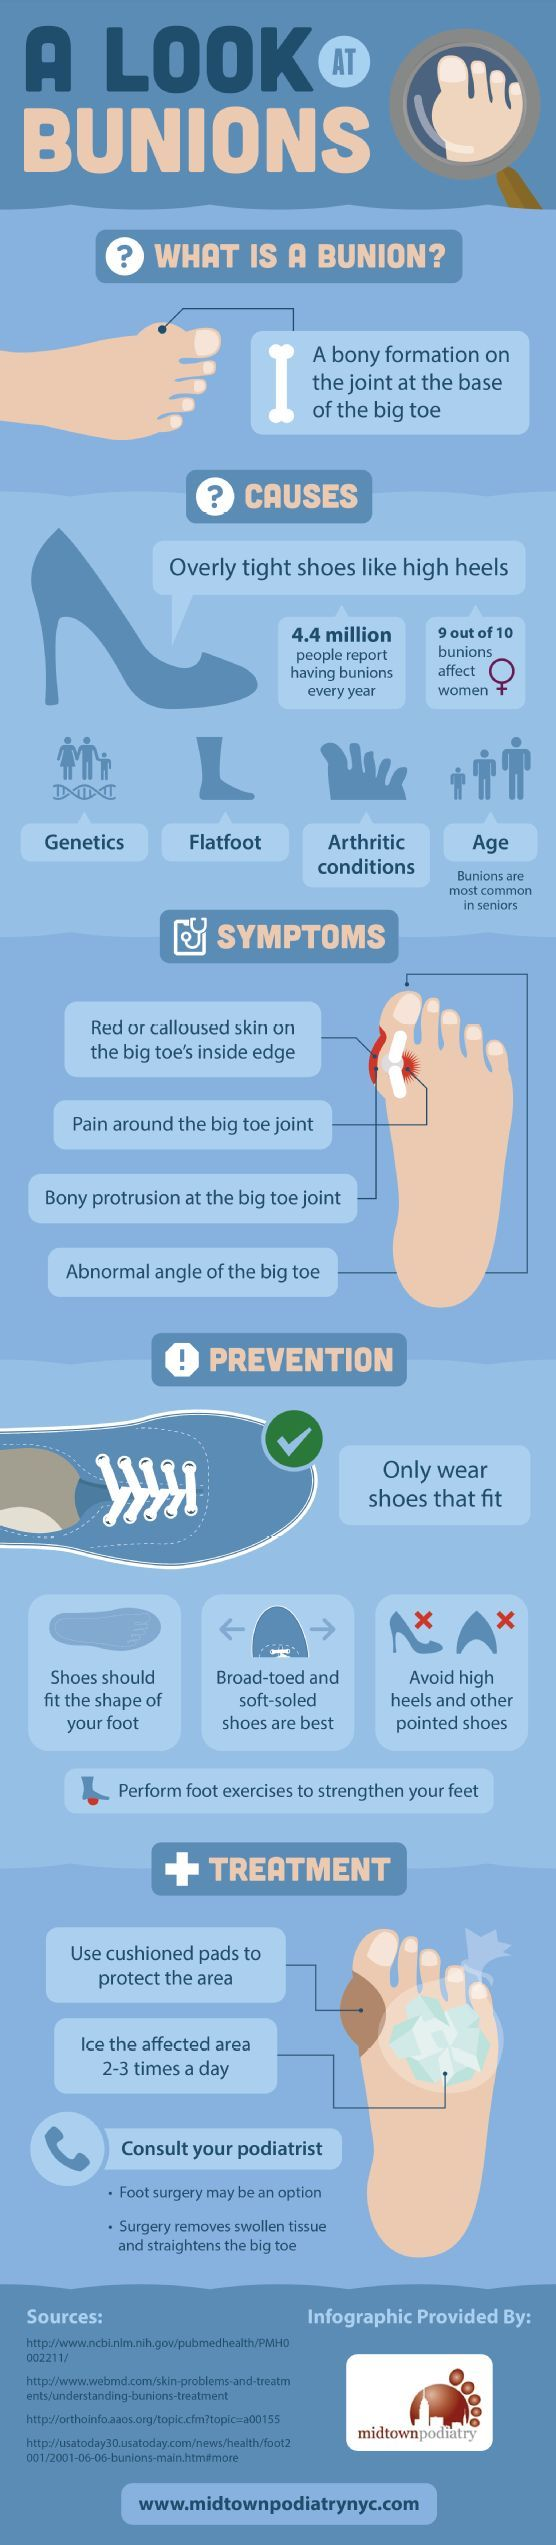 Bunion surgery is not as scary as you may think. NYC podiatrist Dr. Geldwert debunks five common myths and discusses how individual procedures are selected. http://drgeldwert.com/blog/bunions/pain-in-toe-debunking-top-5-bunion-surgery-myths/